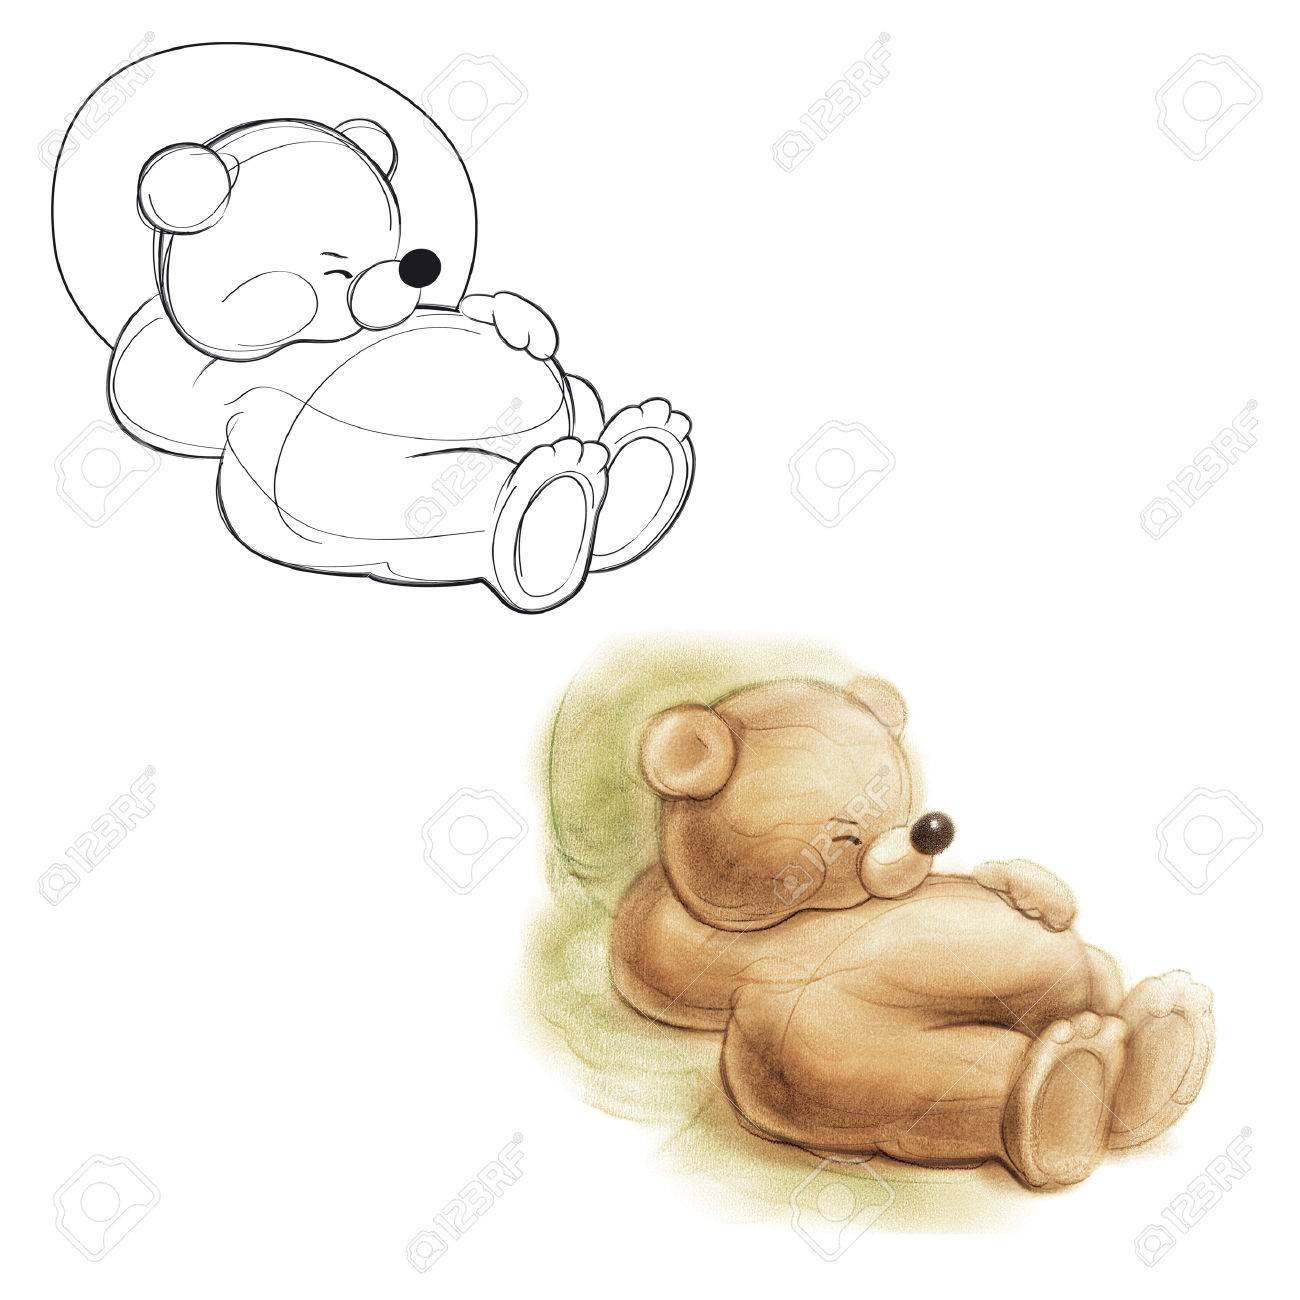 Sleeping teddy bear drawing bear stock photo picture and royalty sleeping teddy bear drawing bear stock photo 24178186 altavistaventures Image collections